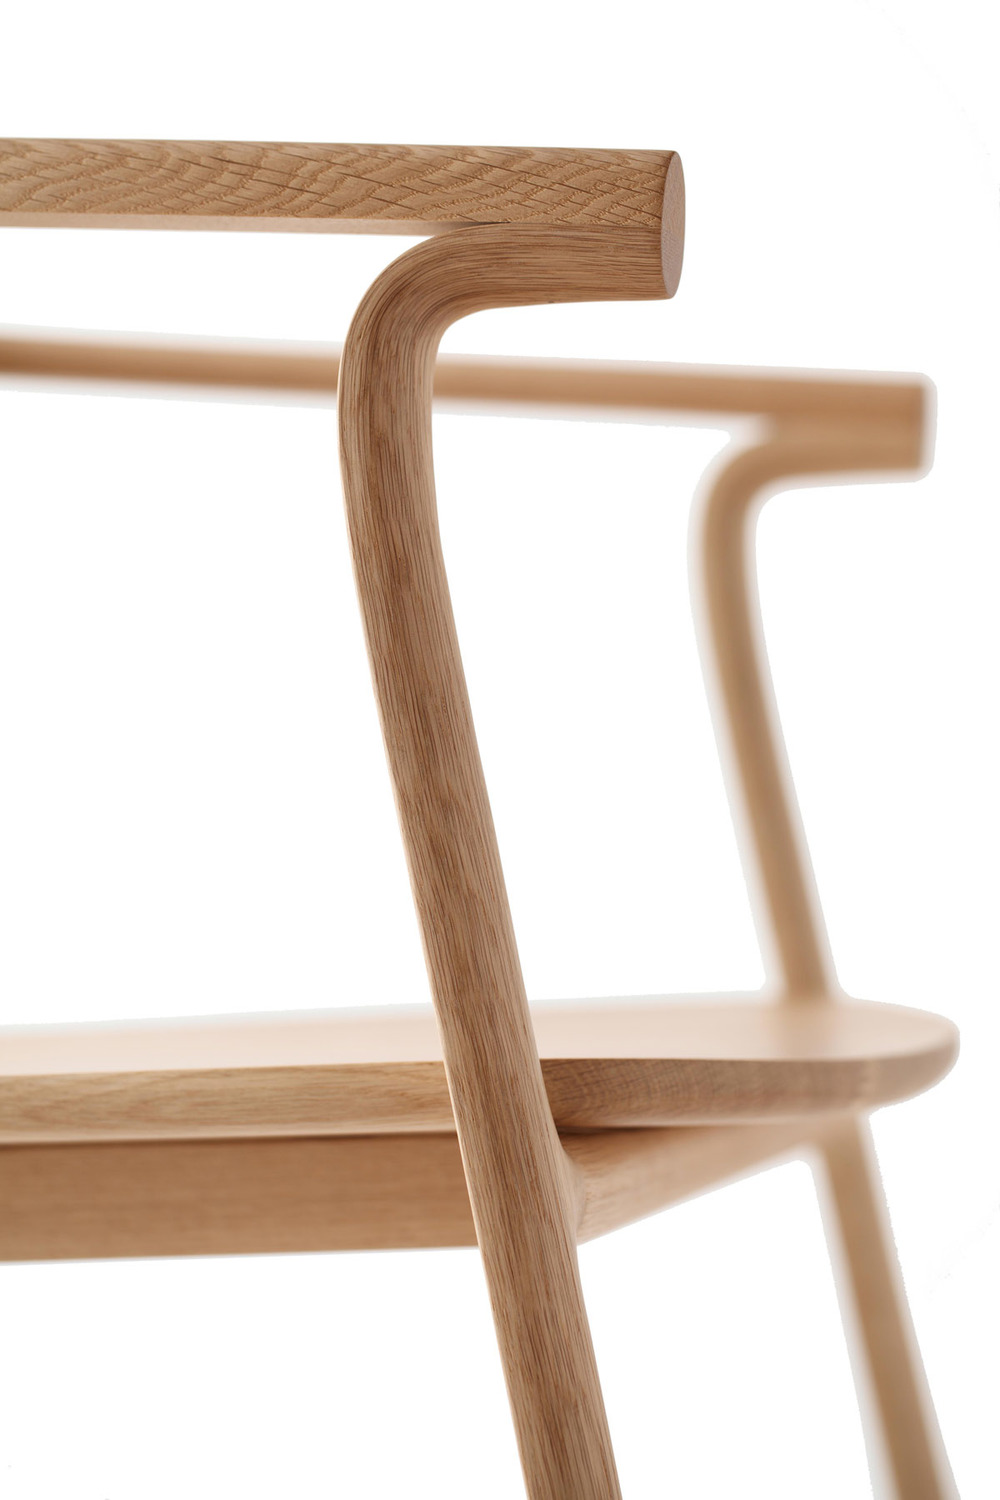 Nendo - Splinter Armchair - 1.jpg